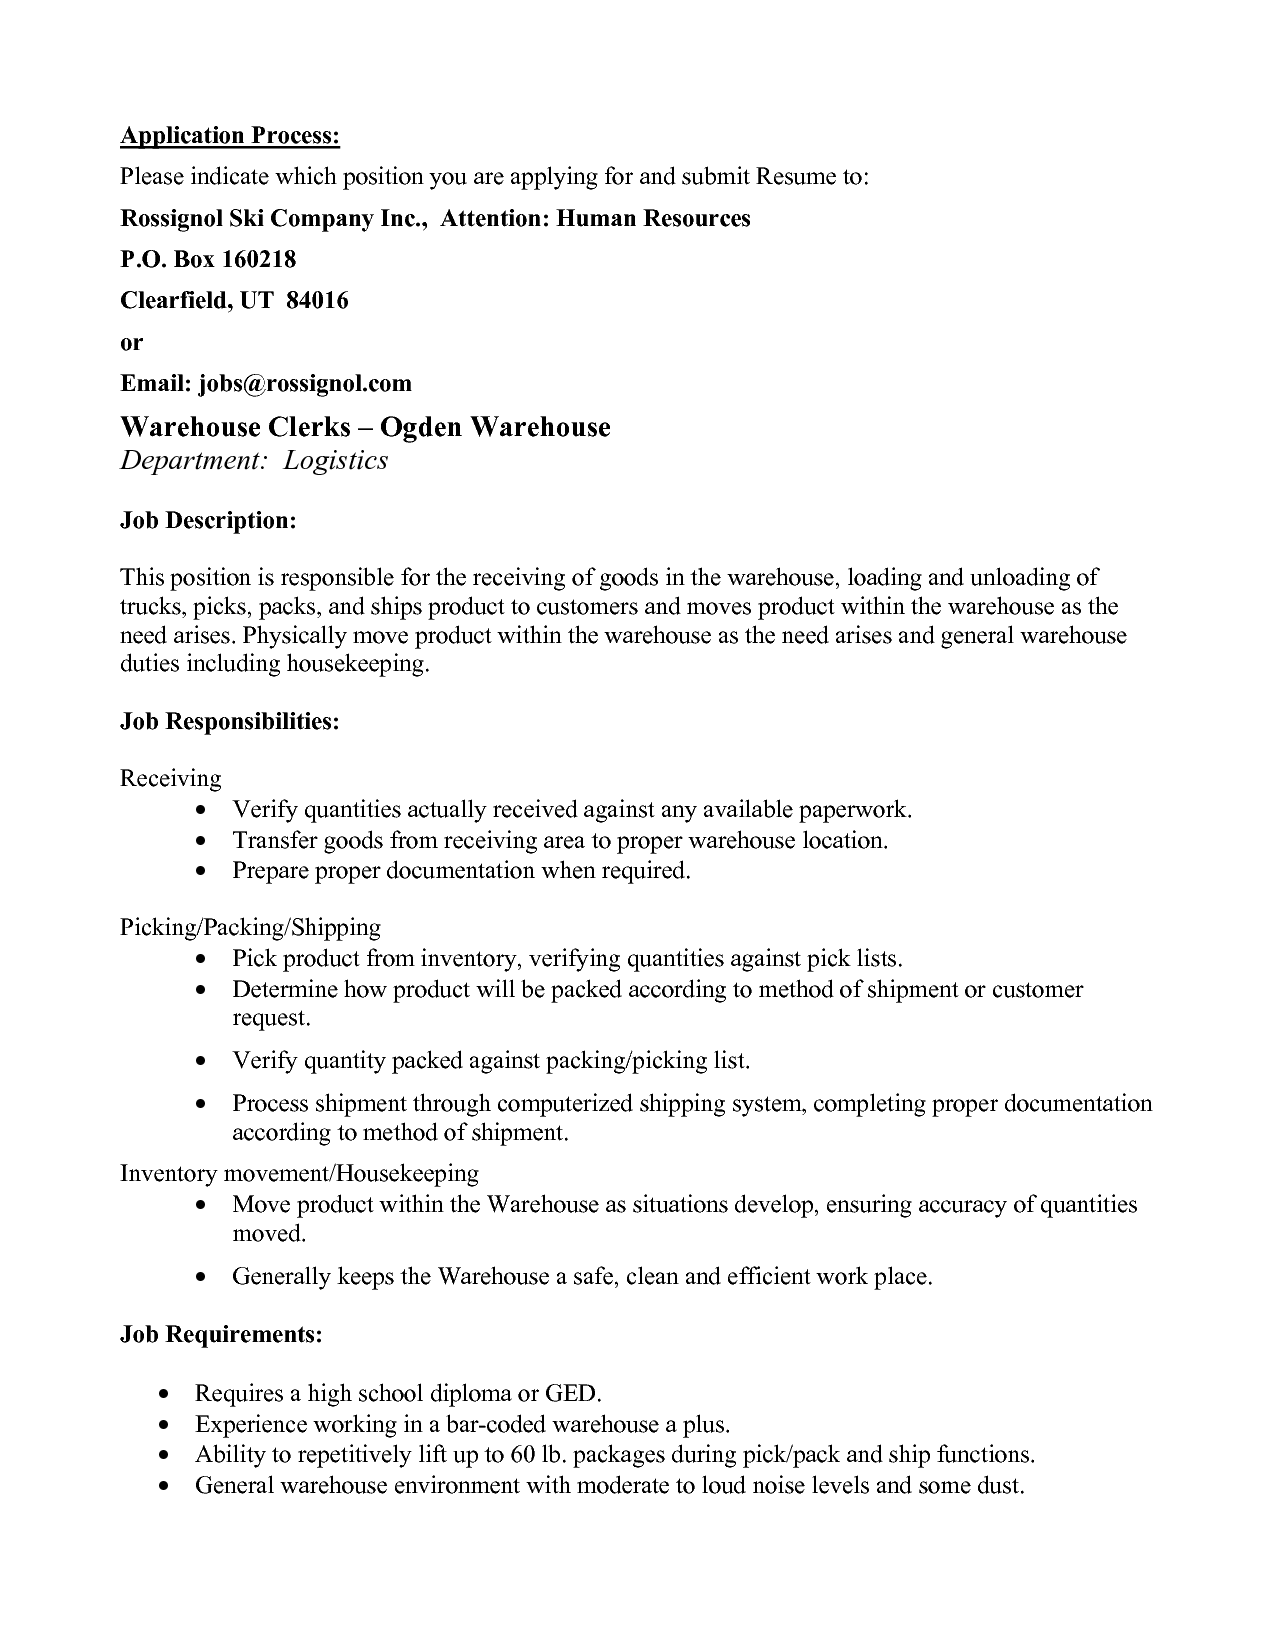 Sample Resumes For Warehouse Jobs Warehouse Picker Resume Sample Picker  Packer Resume .  Duties Of A Warehouse Worker Resume